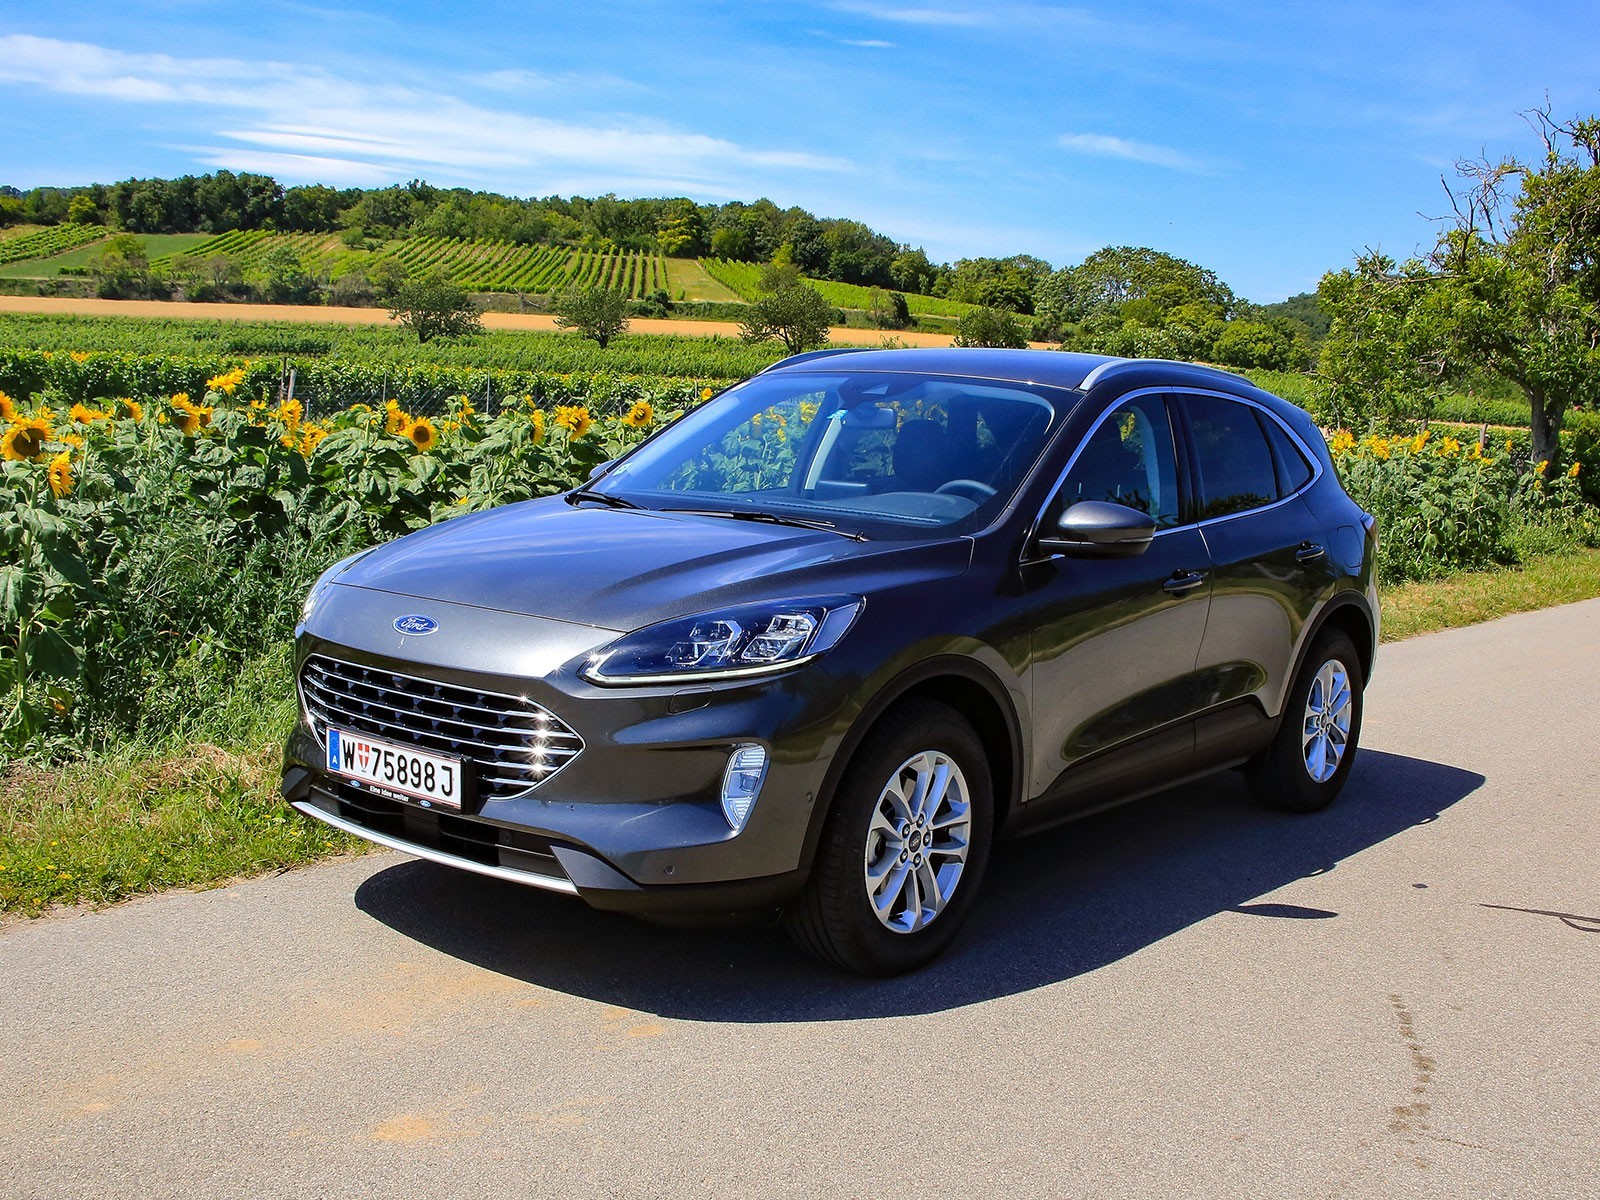 Ford Kuga 2,0 EcoBlue mHEV Frontansicht